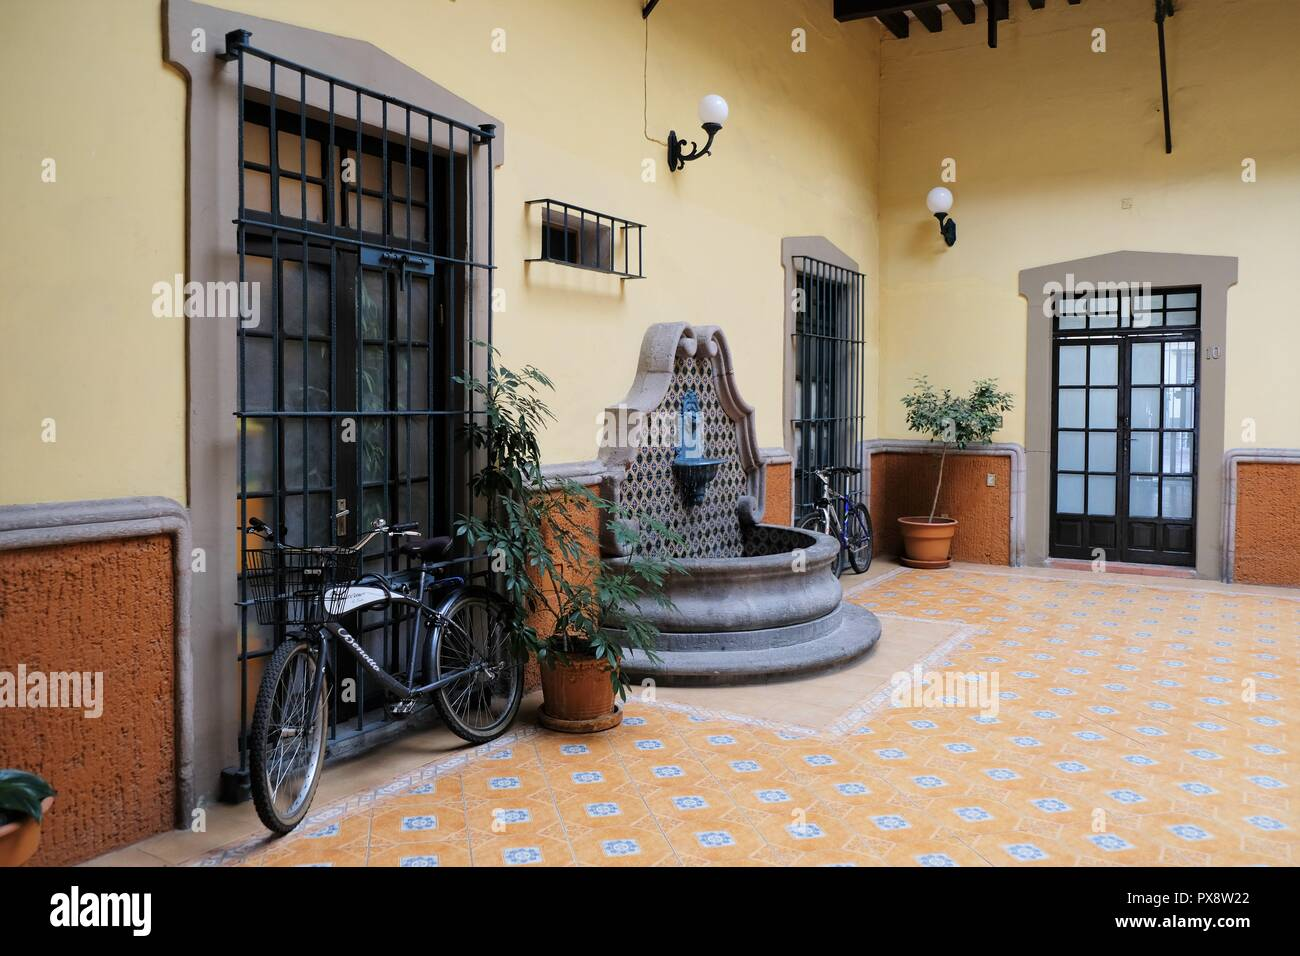 Interior of a courtyard in a traditional colonial era home in the city of queretaro queretaro mexico fountain bicycle window with bars